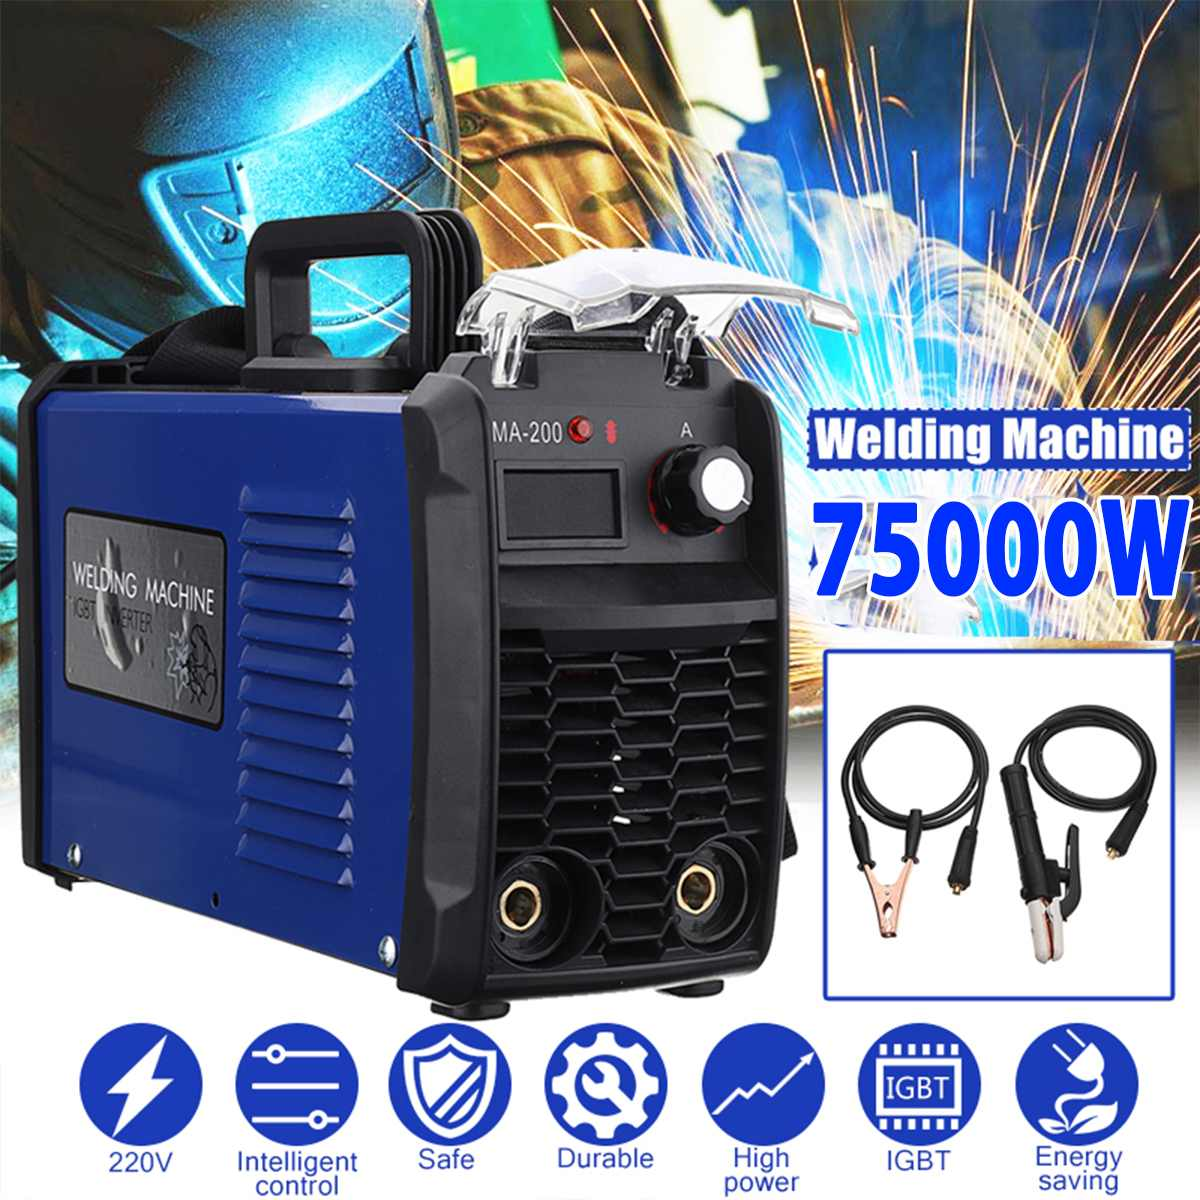 7500W/6000W DC Inverter ARC Welder 220V IGBT MMA Welding Machine 200Amp/250Amp For Home Beginner Lightweight Efficient